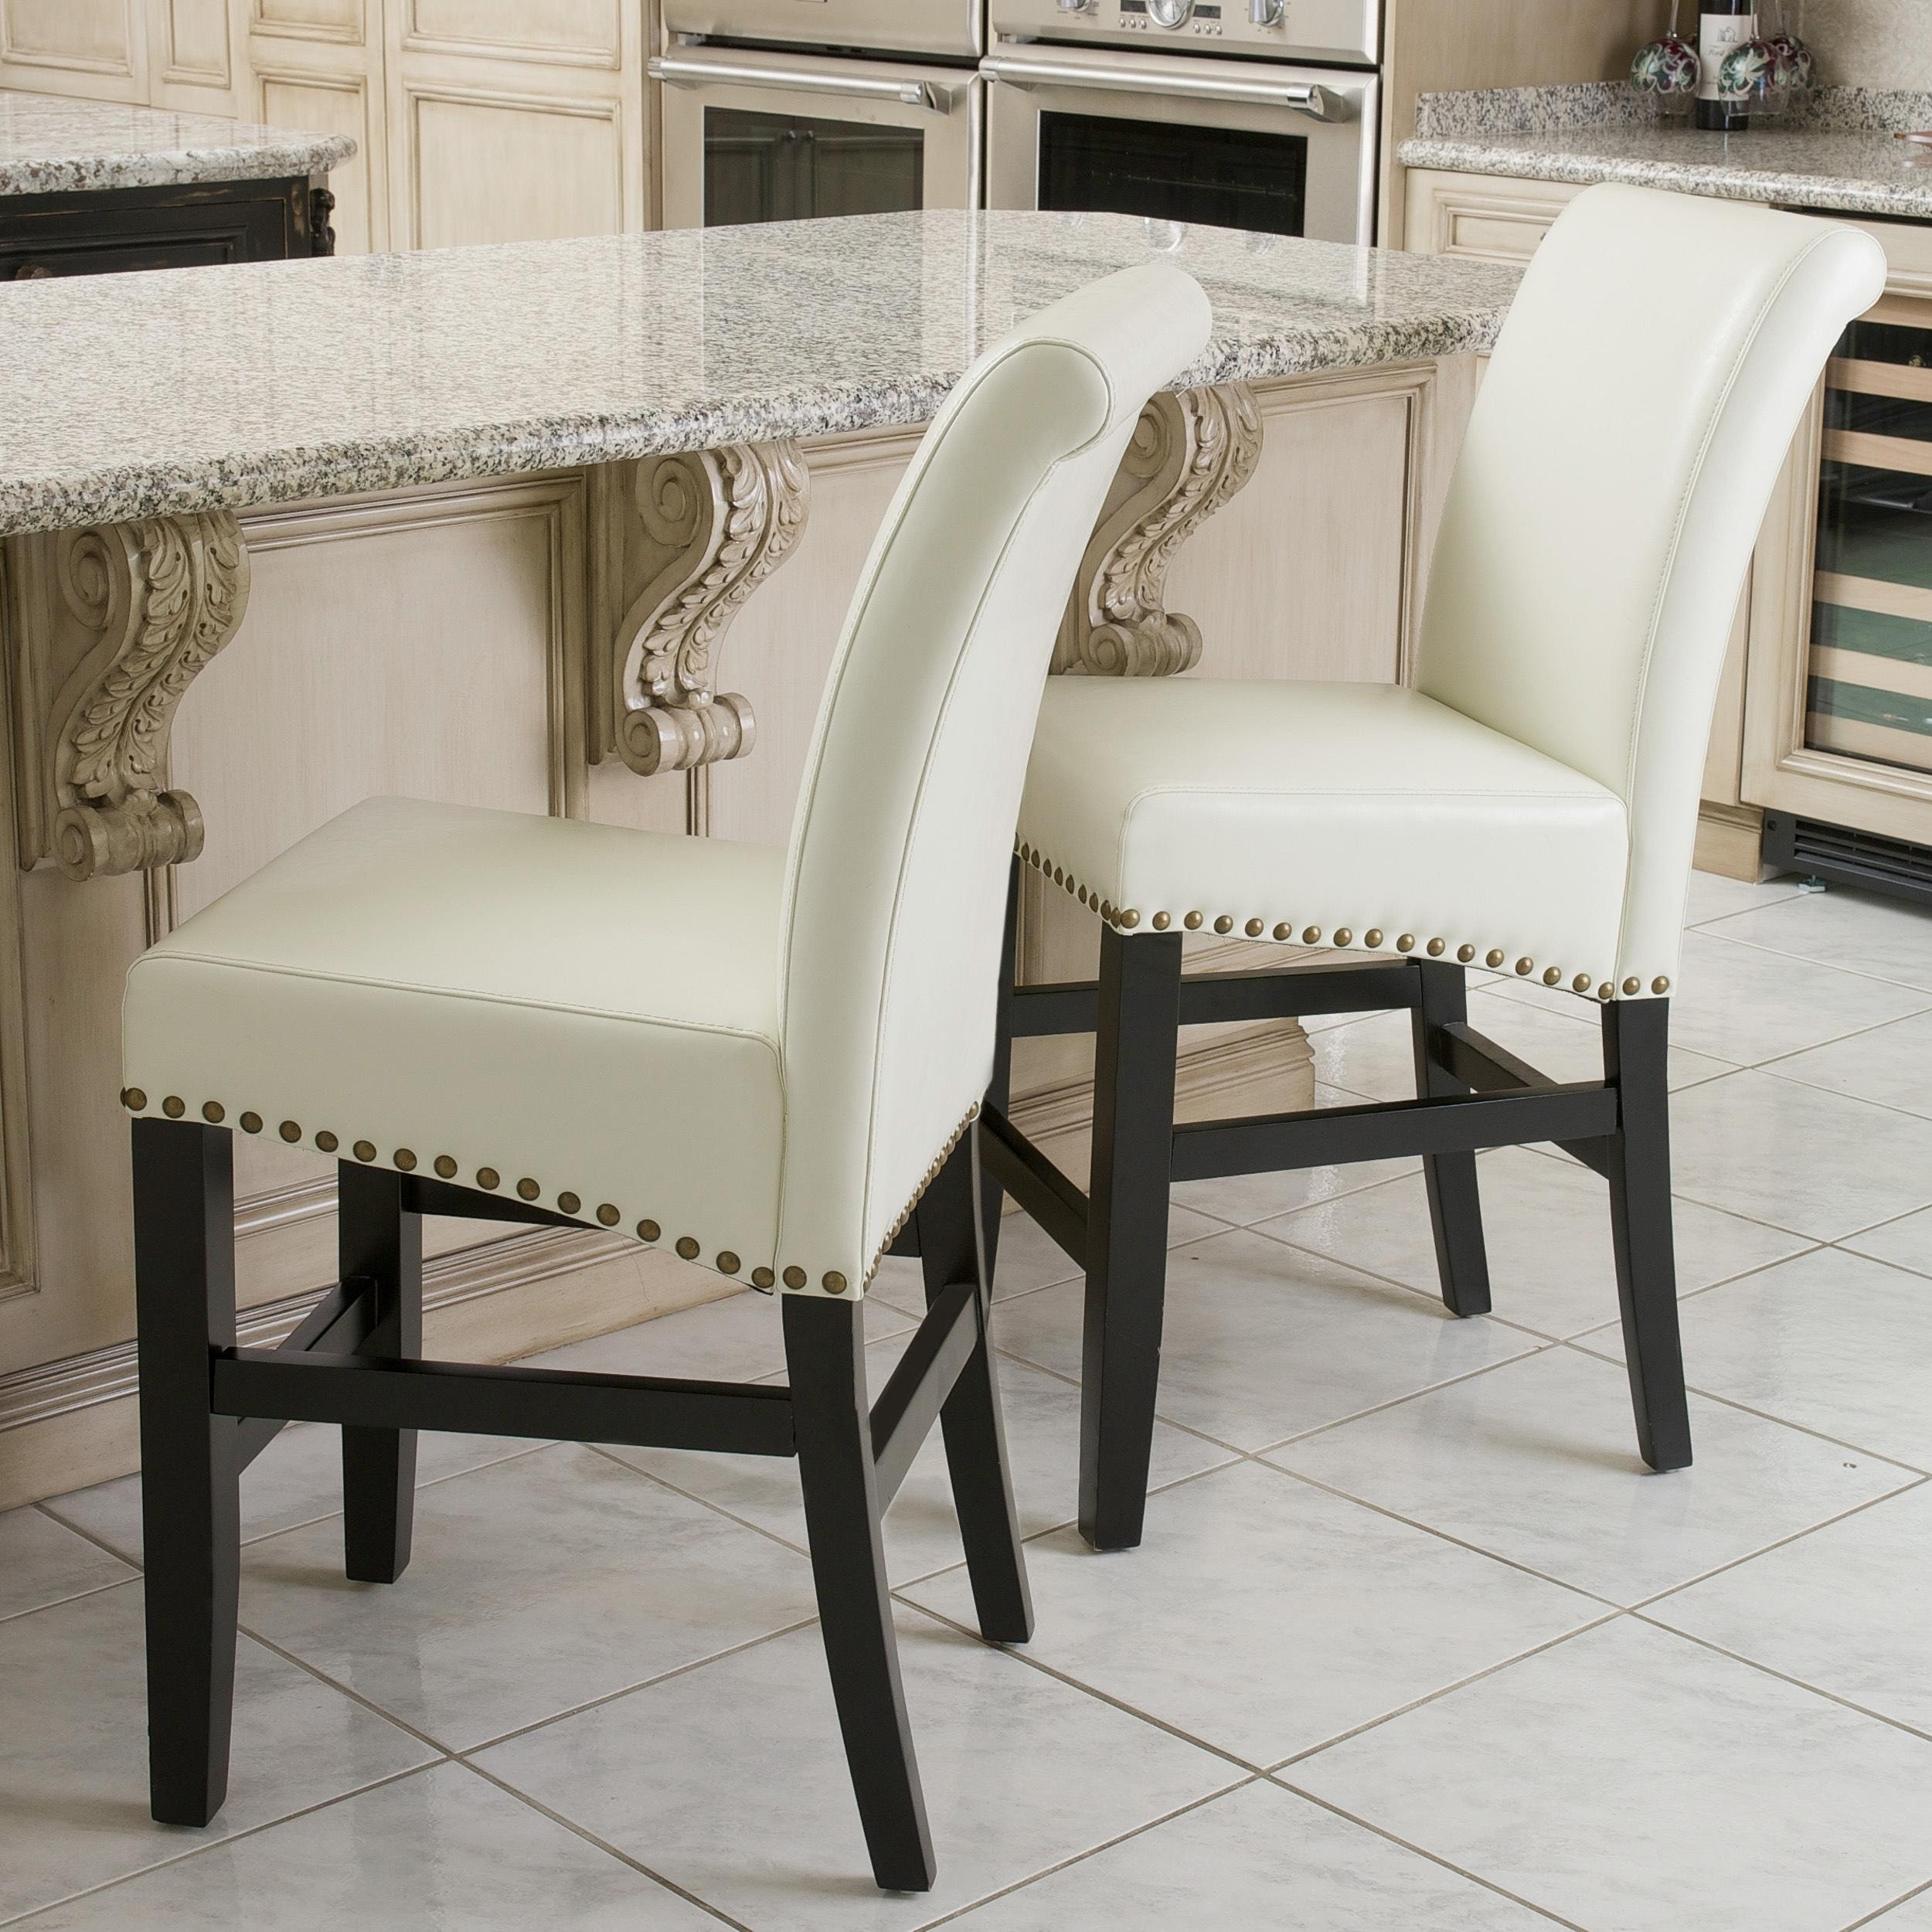 Christopher Knight Home Lisette Leather Counter Stool (Se...